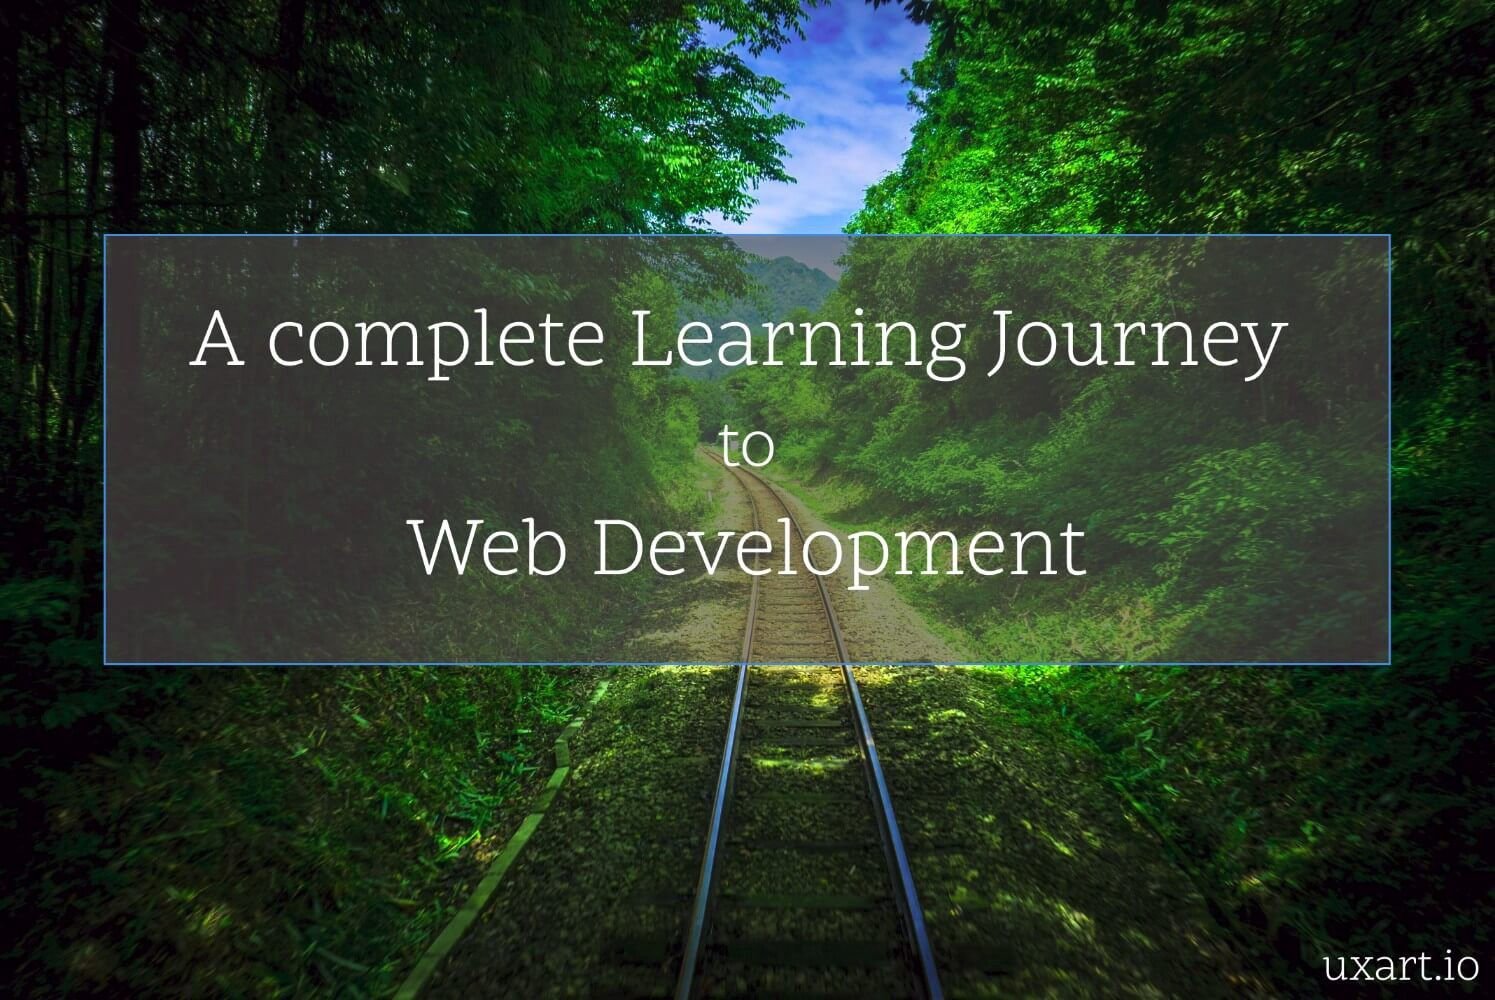 Join me on a complete learning journey to web development the join me on a complete learning journey to web development the ultimate blueprint malvernweather Gallery